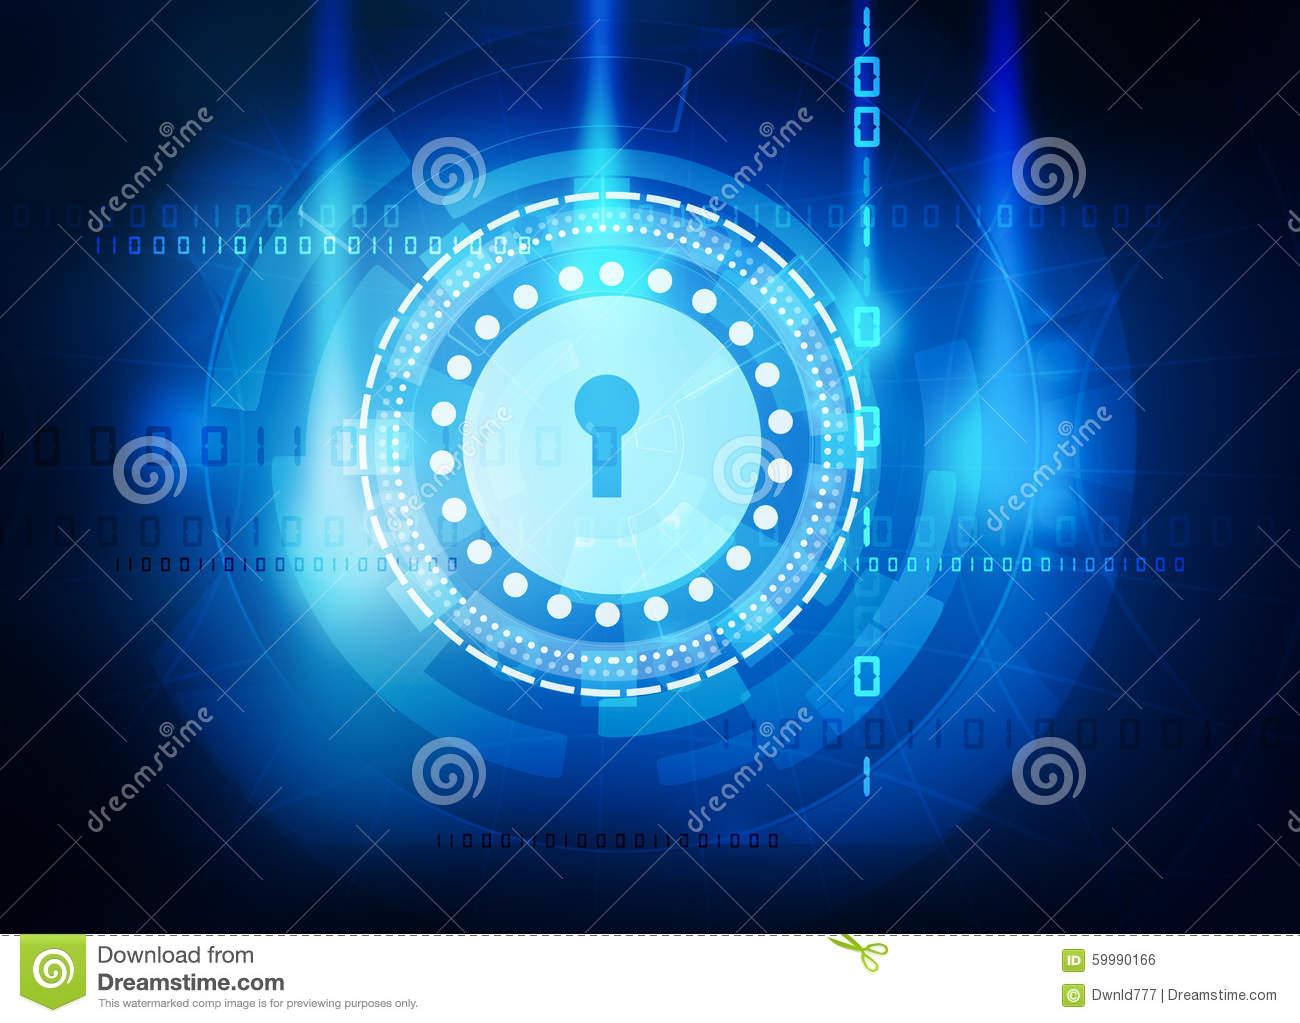 Add Security Access Database